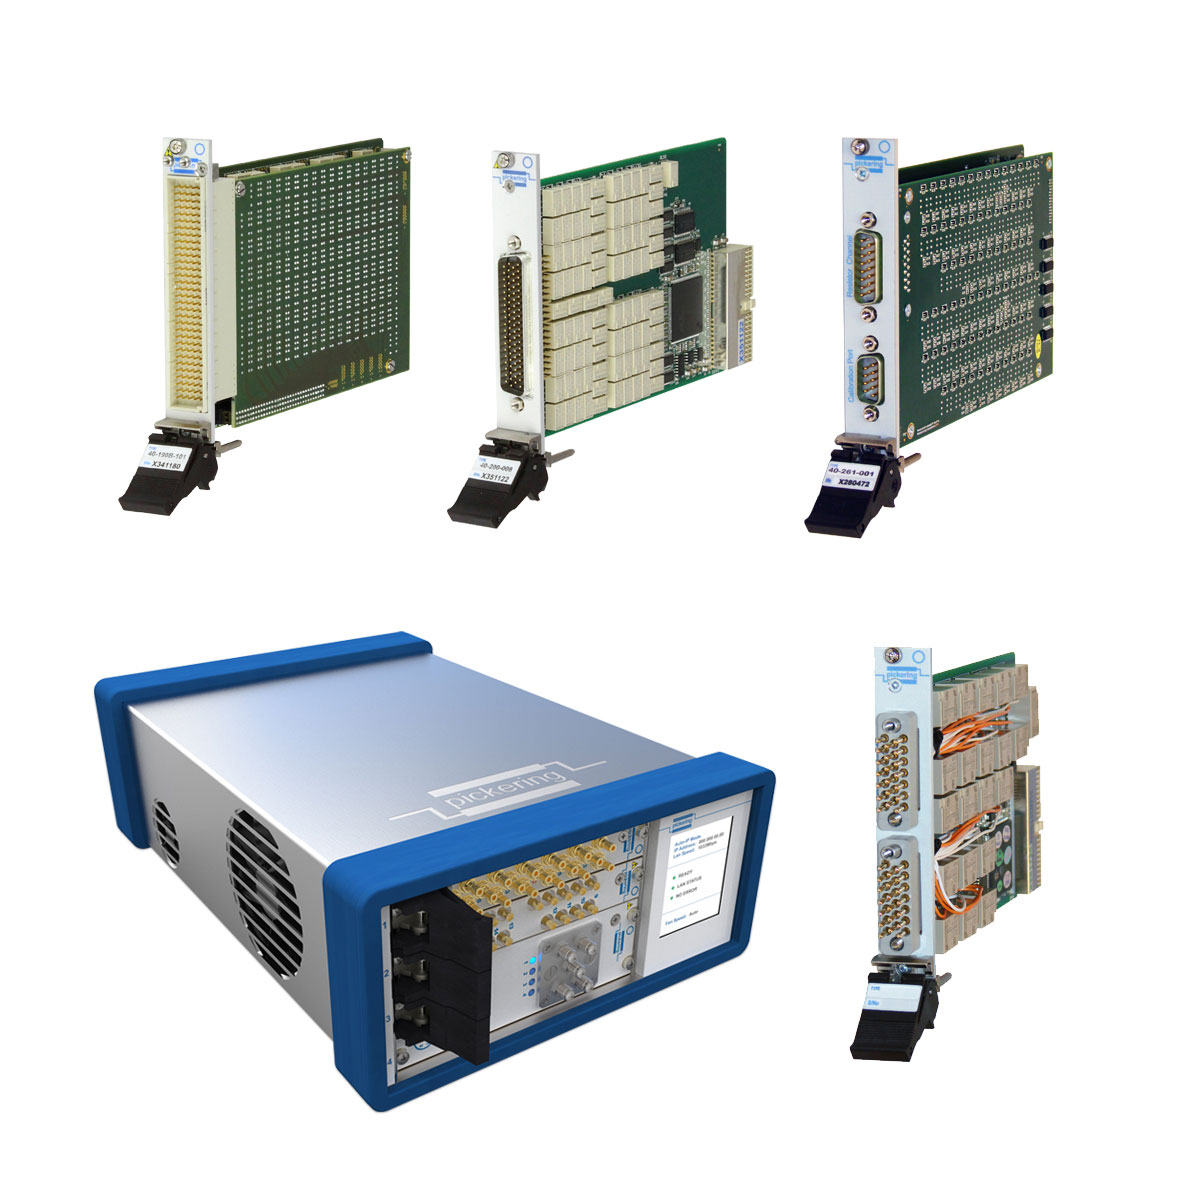 Pickering to highlight PXI & LXI switching & simulation at ATE Korea